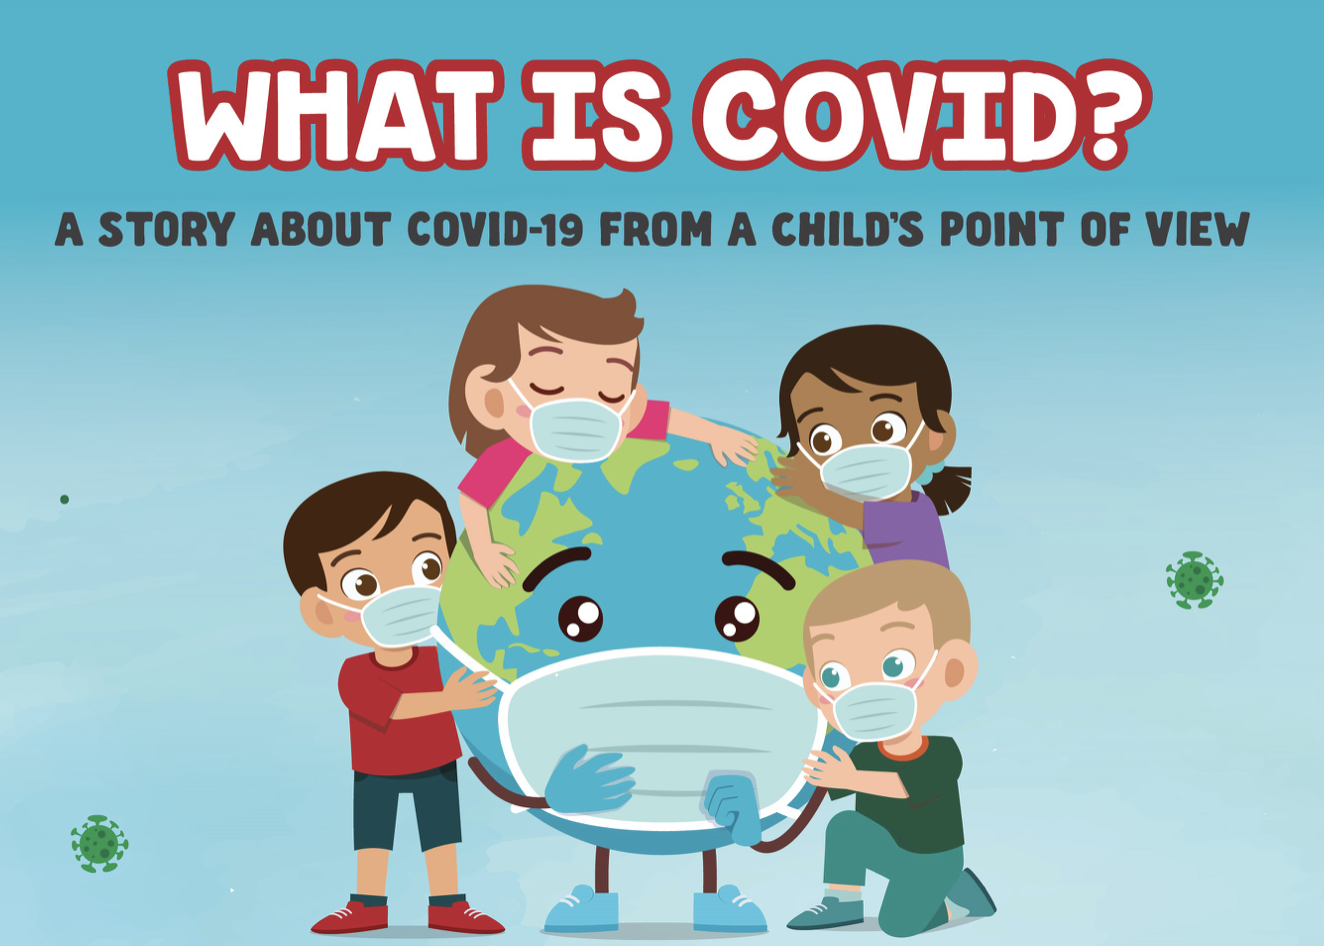 What is COVID?